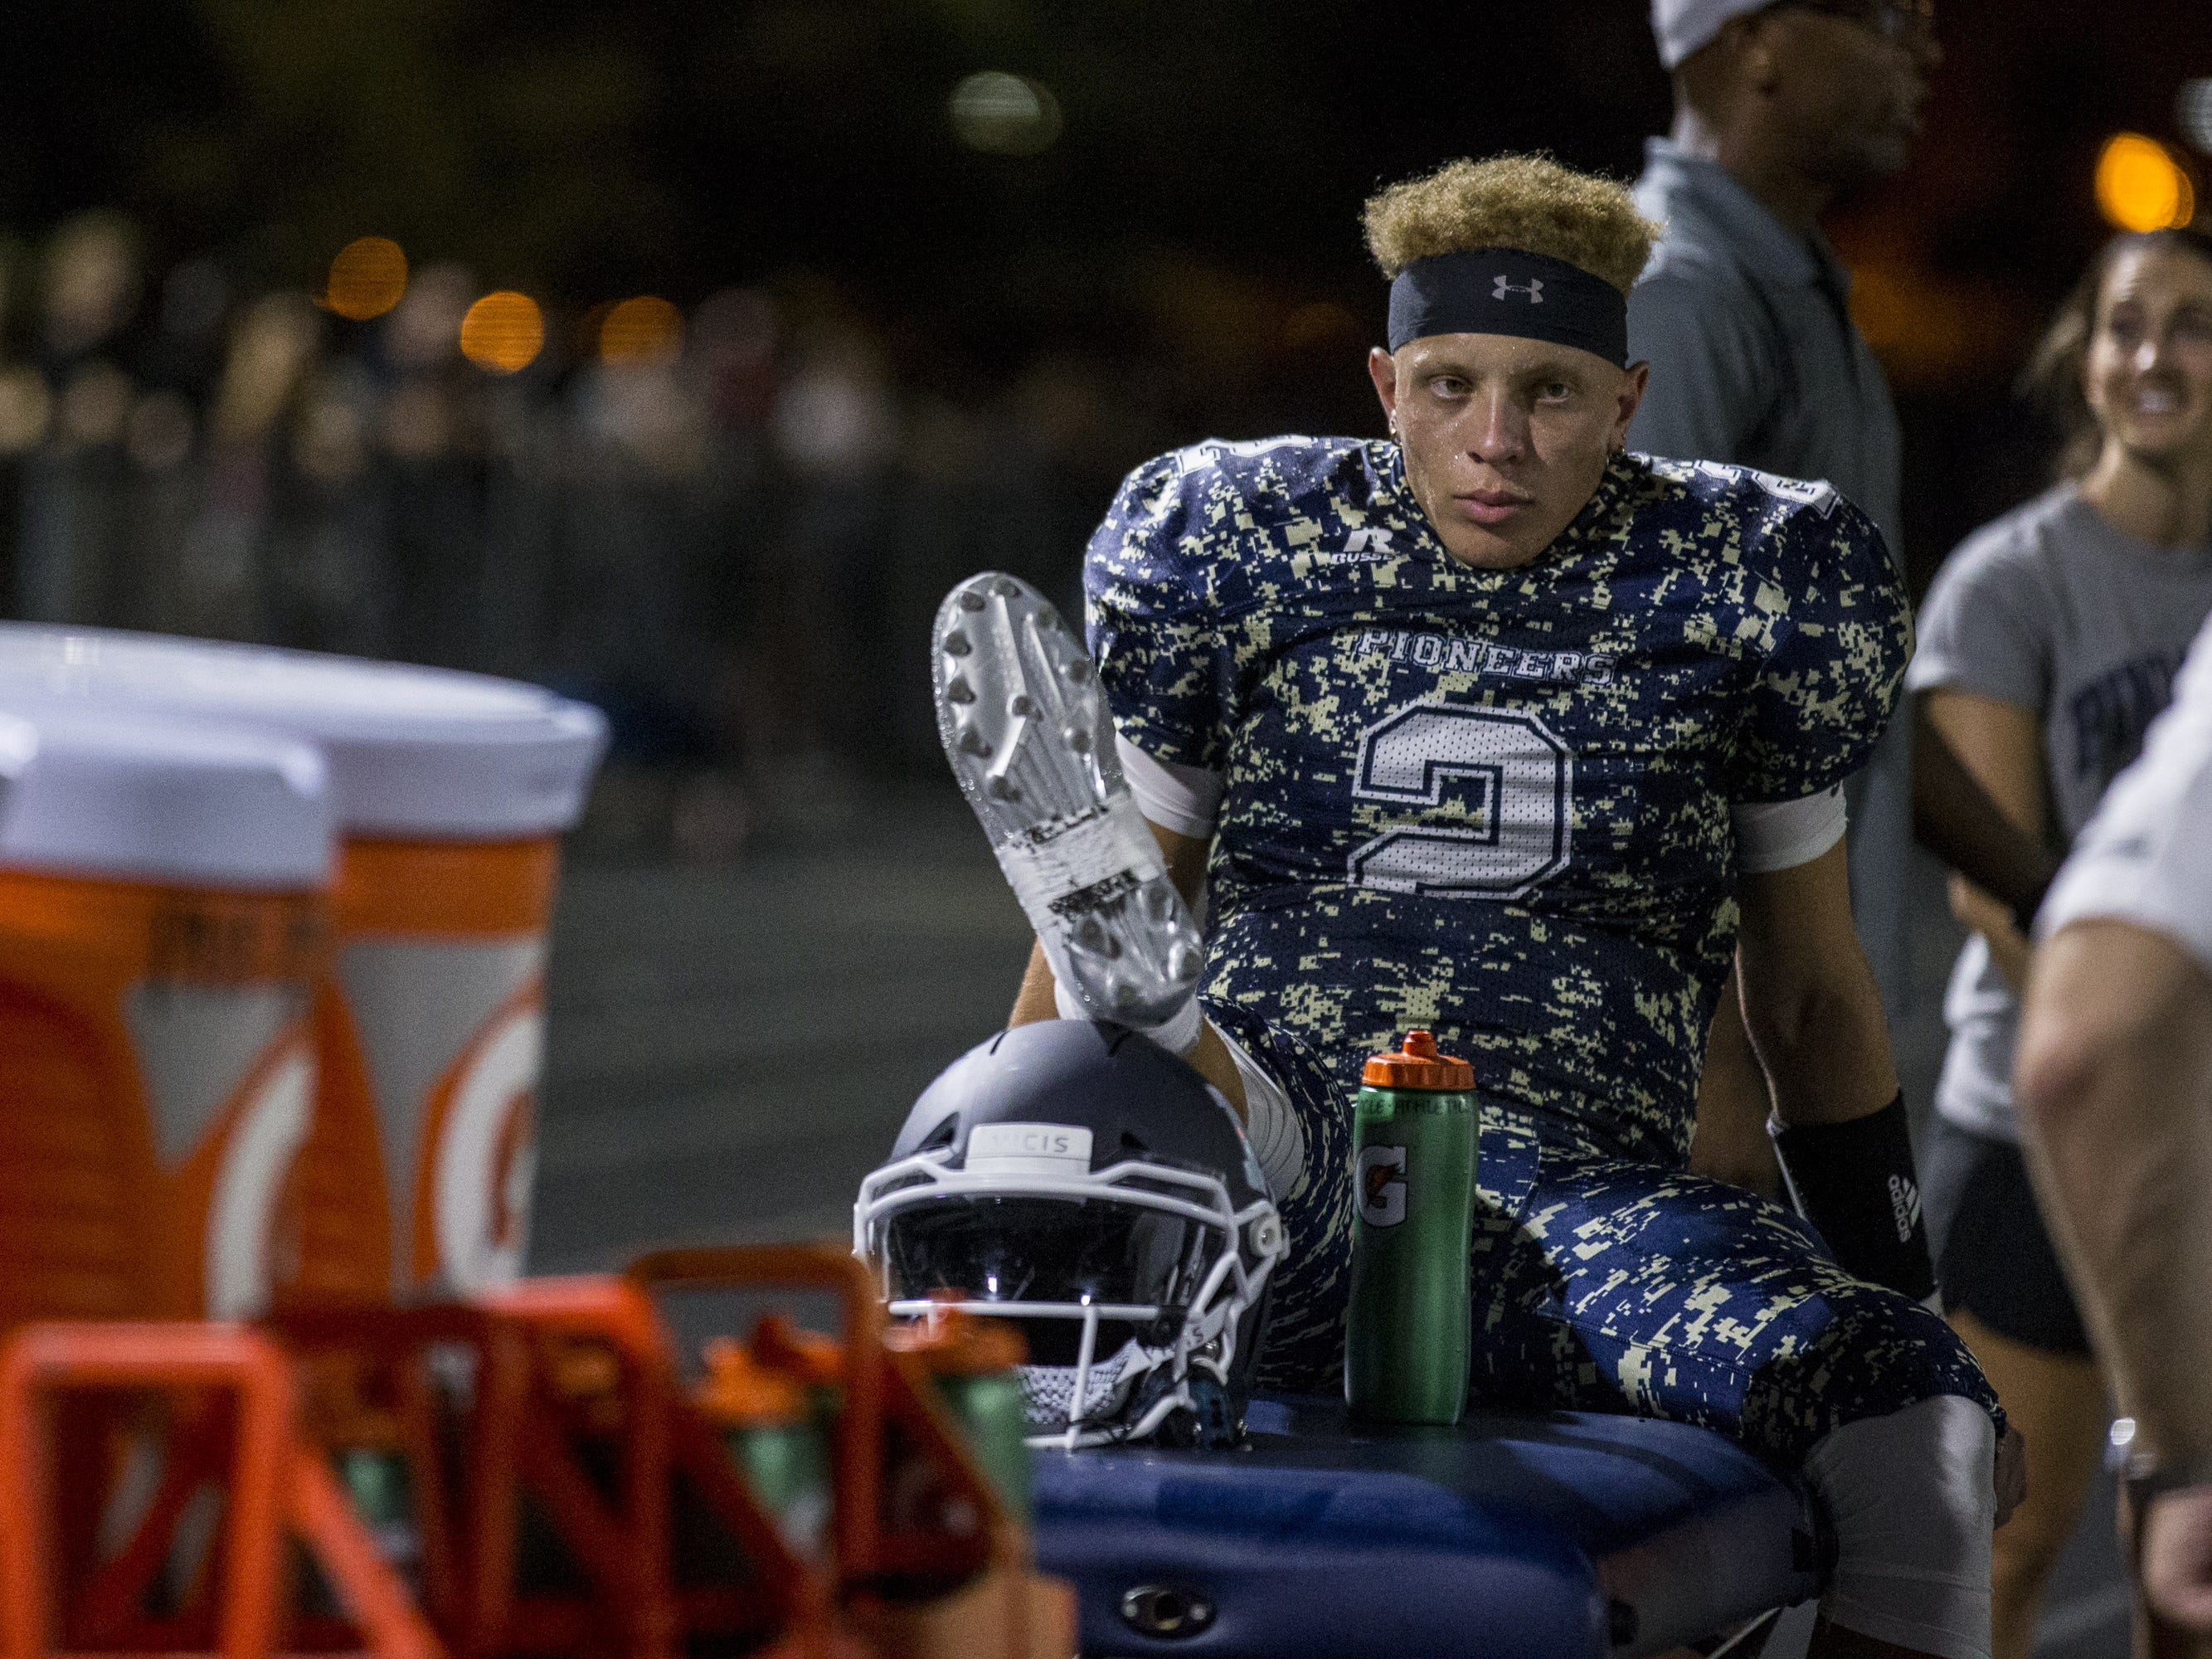 Pinnacle's Spencer Rattler sits on the sideline after being injured during the game against Mountain Pointe on Friday, Aug. 24, 2018, at Pinnacle High School in Phoenix.   #azhsfb